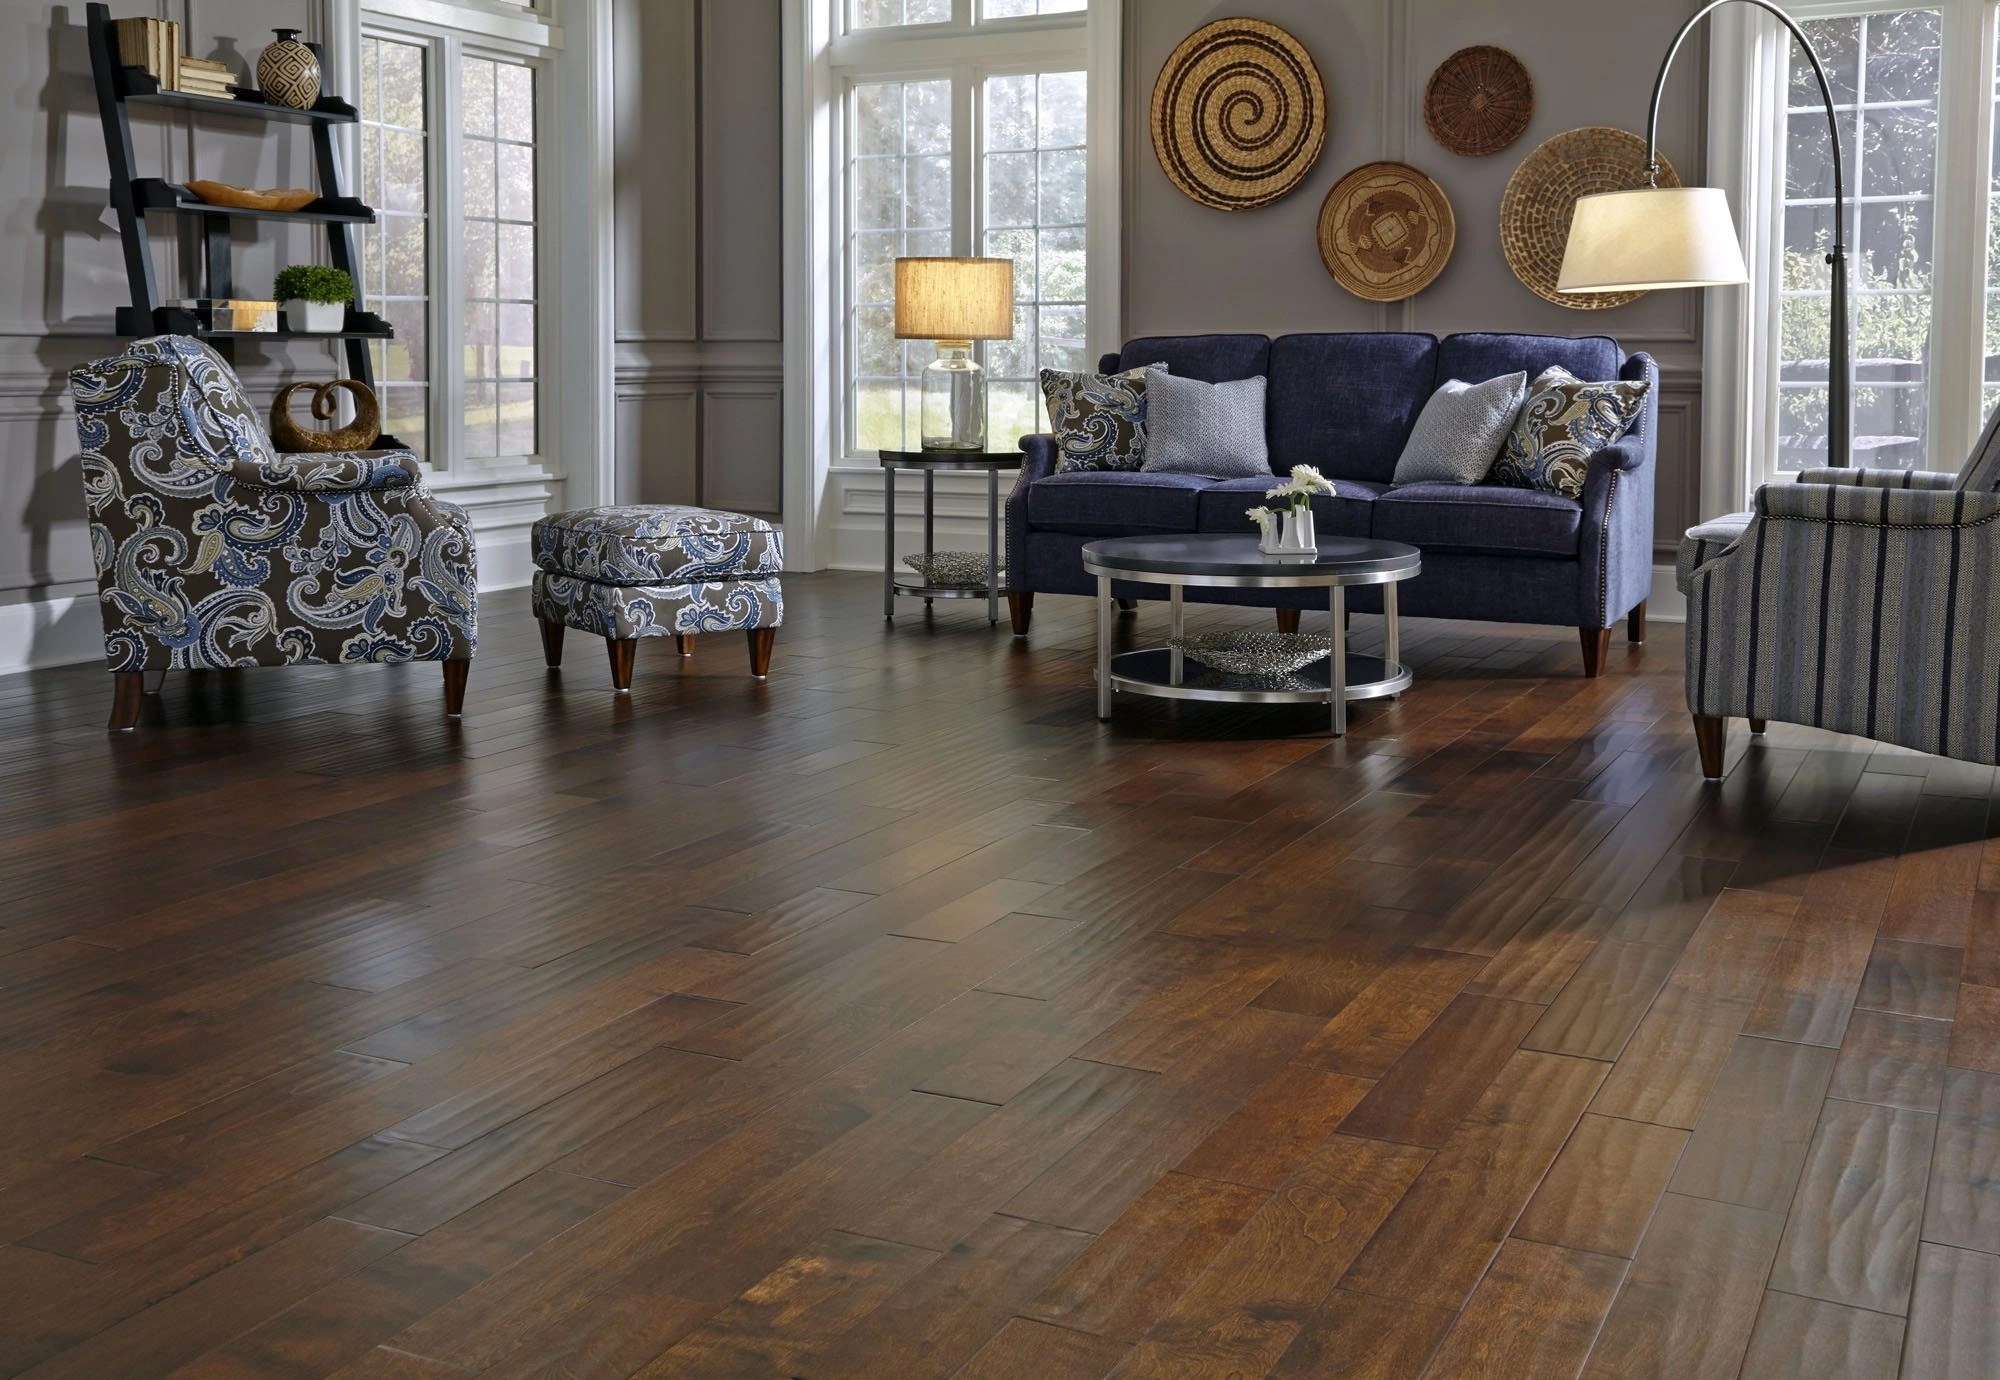 Melmart Savannah Mountainside Birch Vintage Floors